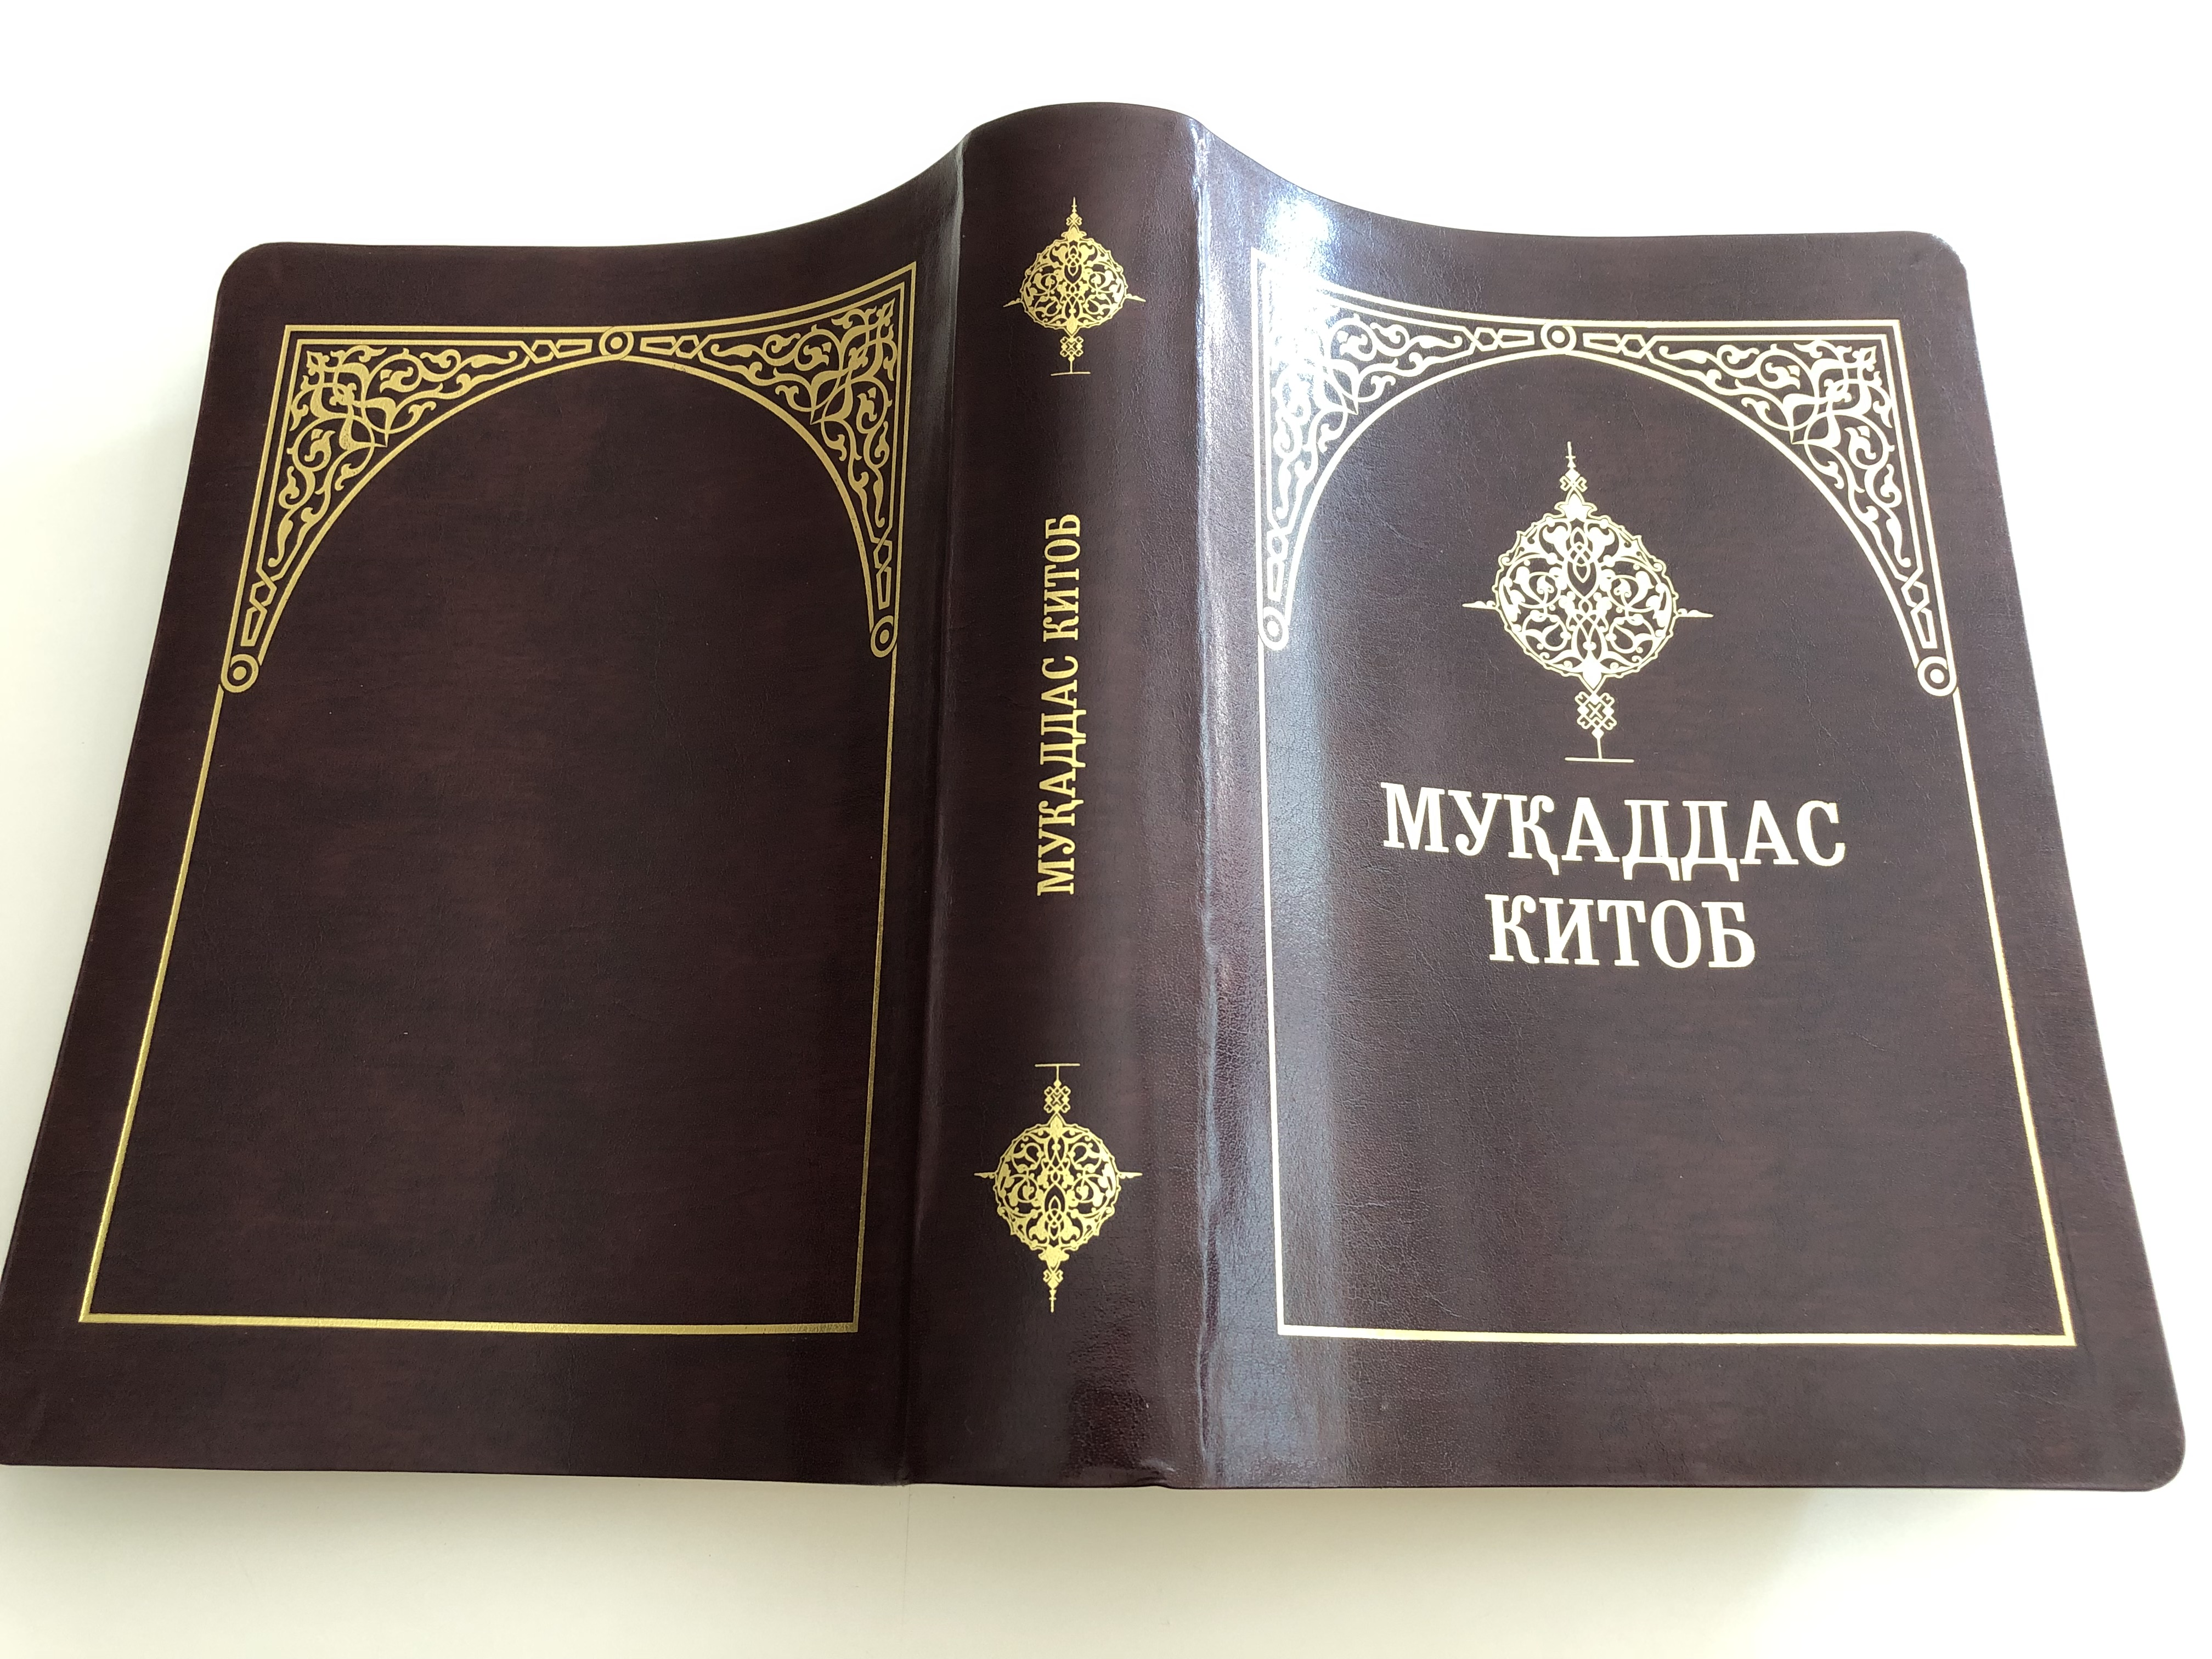 -leather-bound-uzbek-holy-bible-with-commentaries-and-nt-parallel-passage-tables-golden-edges-ribbon-bookmarks-o-zbekcha-cyrillic-script-brown-leather-bound-2018-4-.jpg